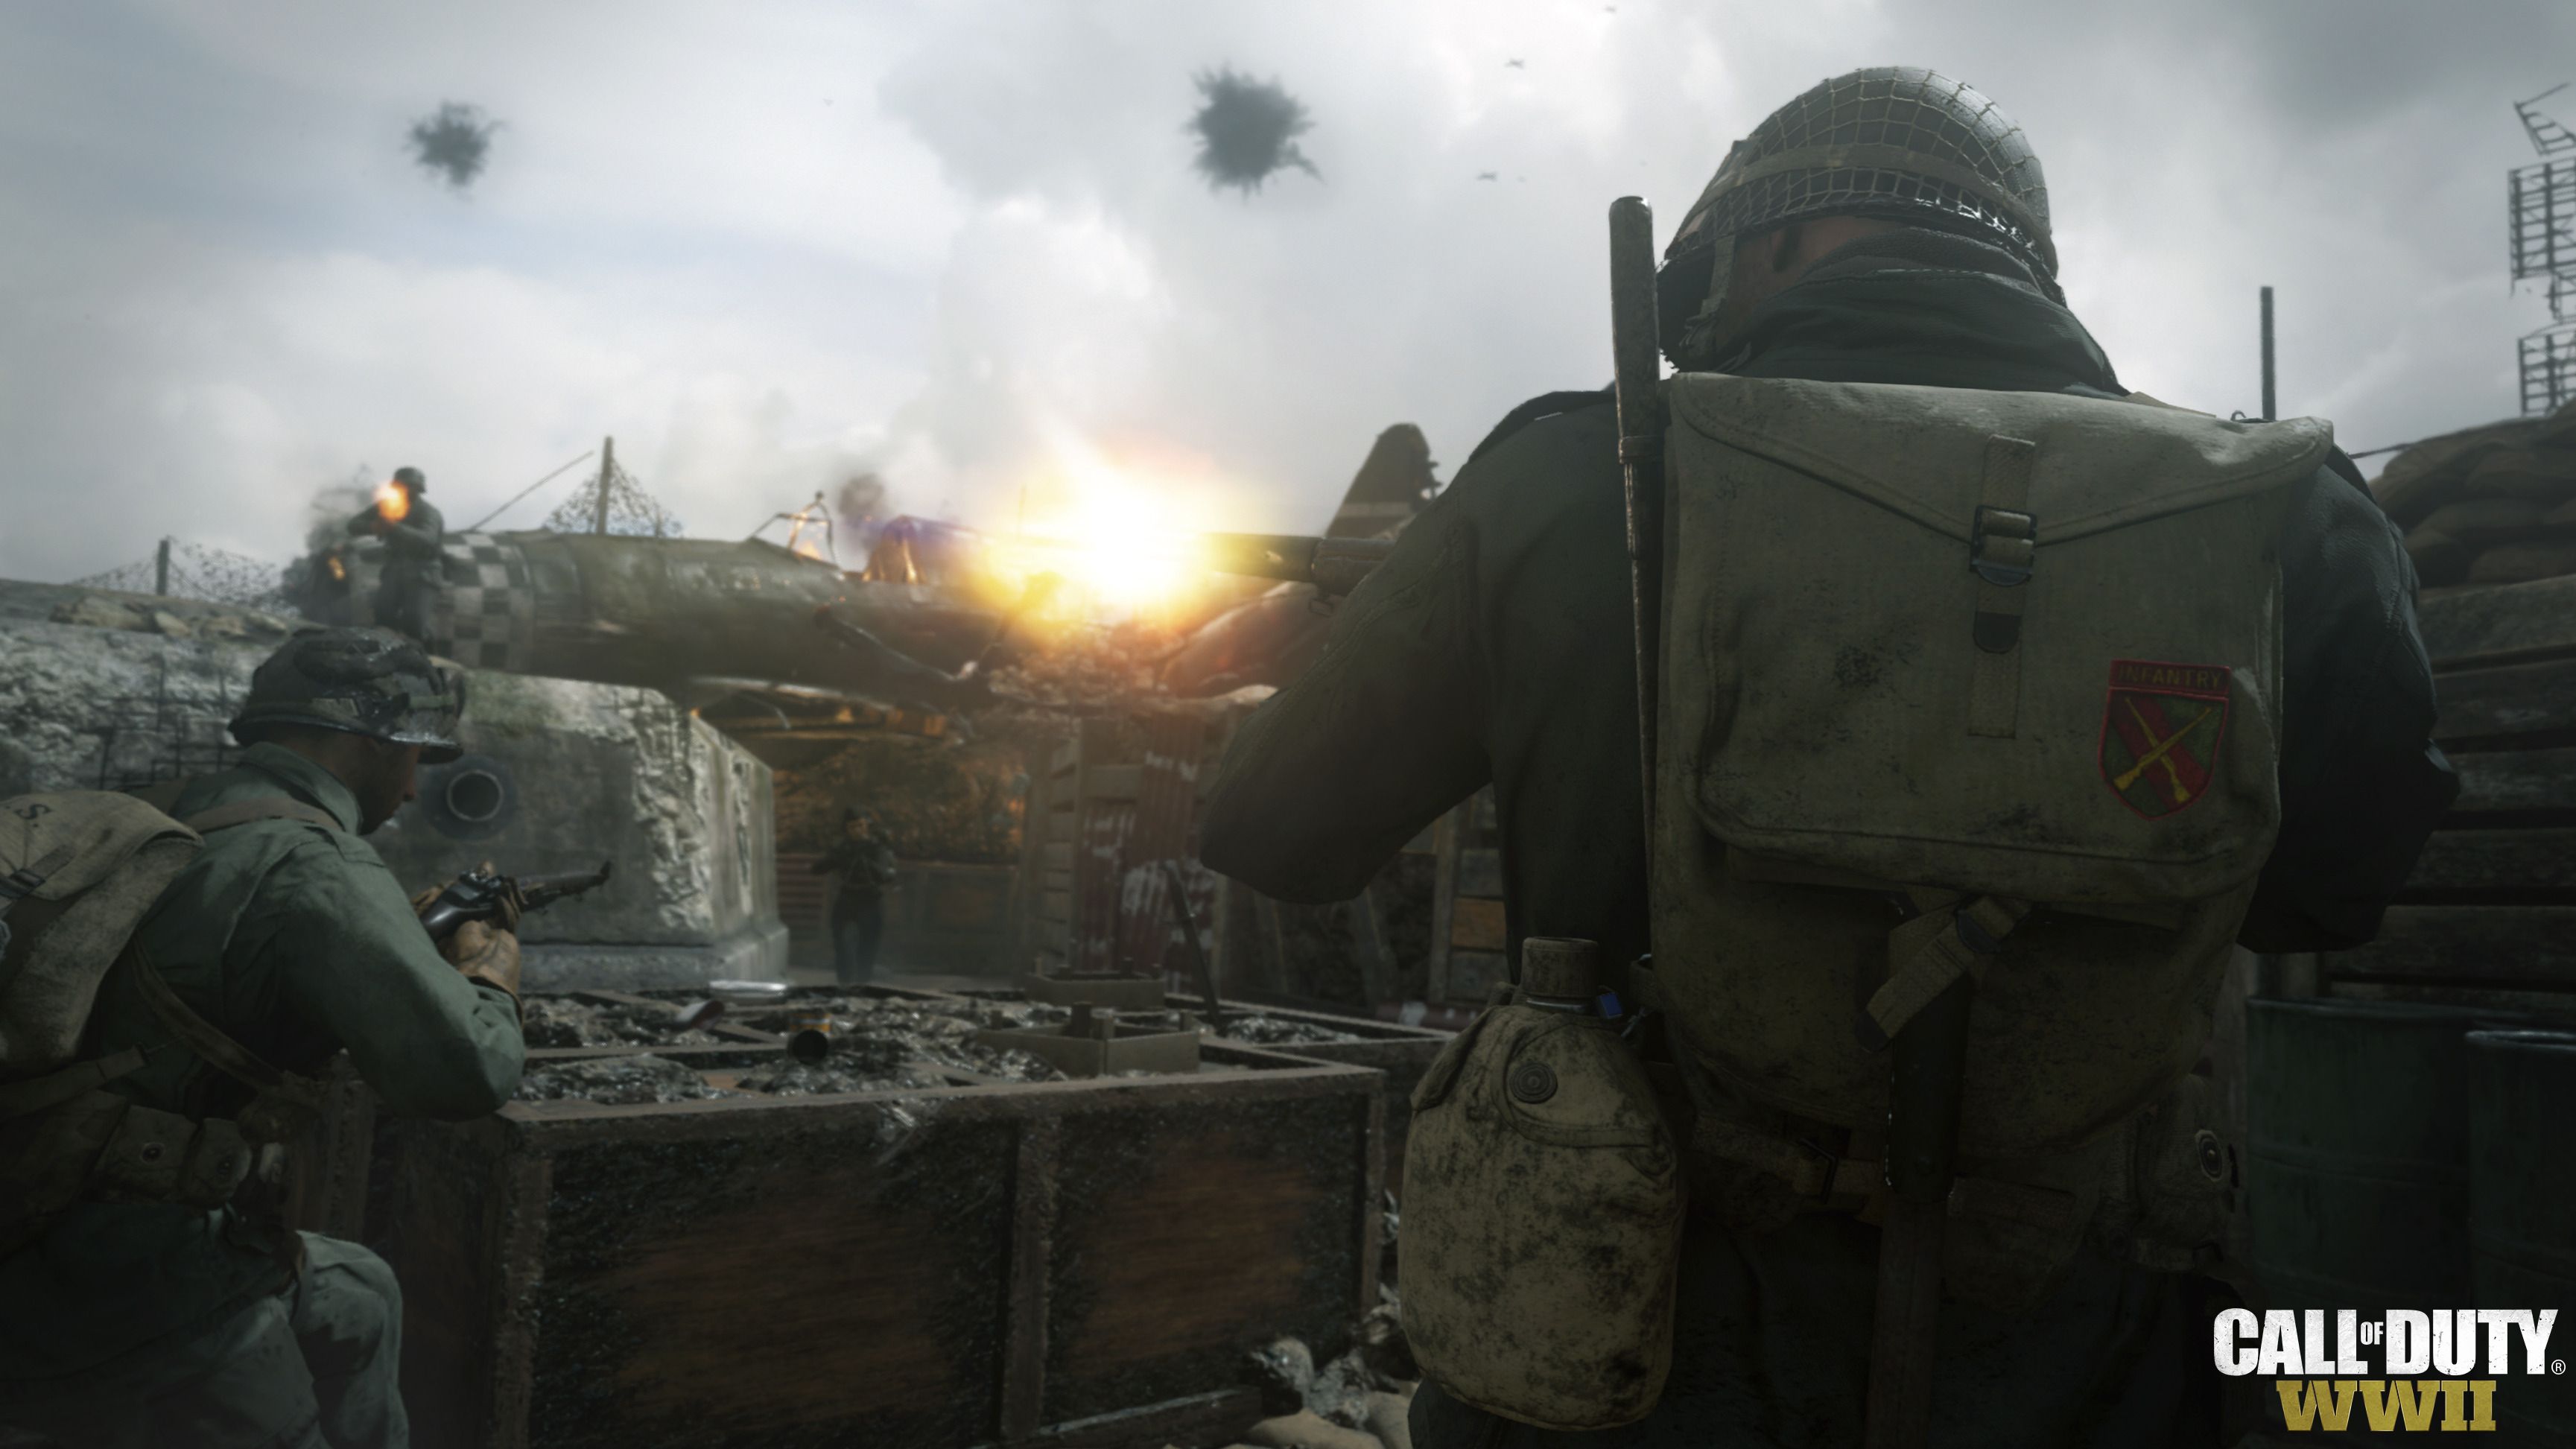 Preview: Call of Duty: WWII is a welcome return to the golden age of the series